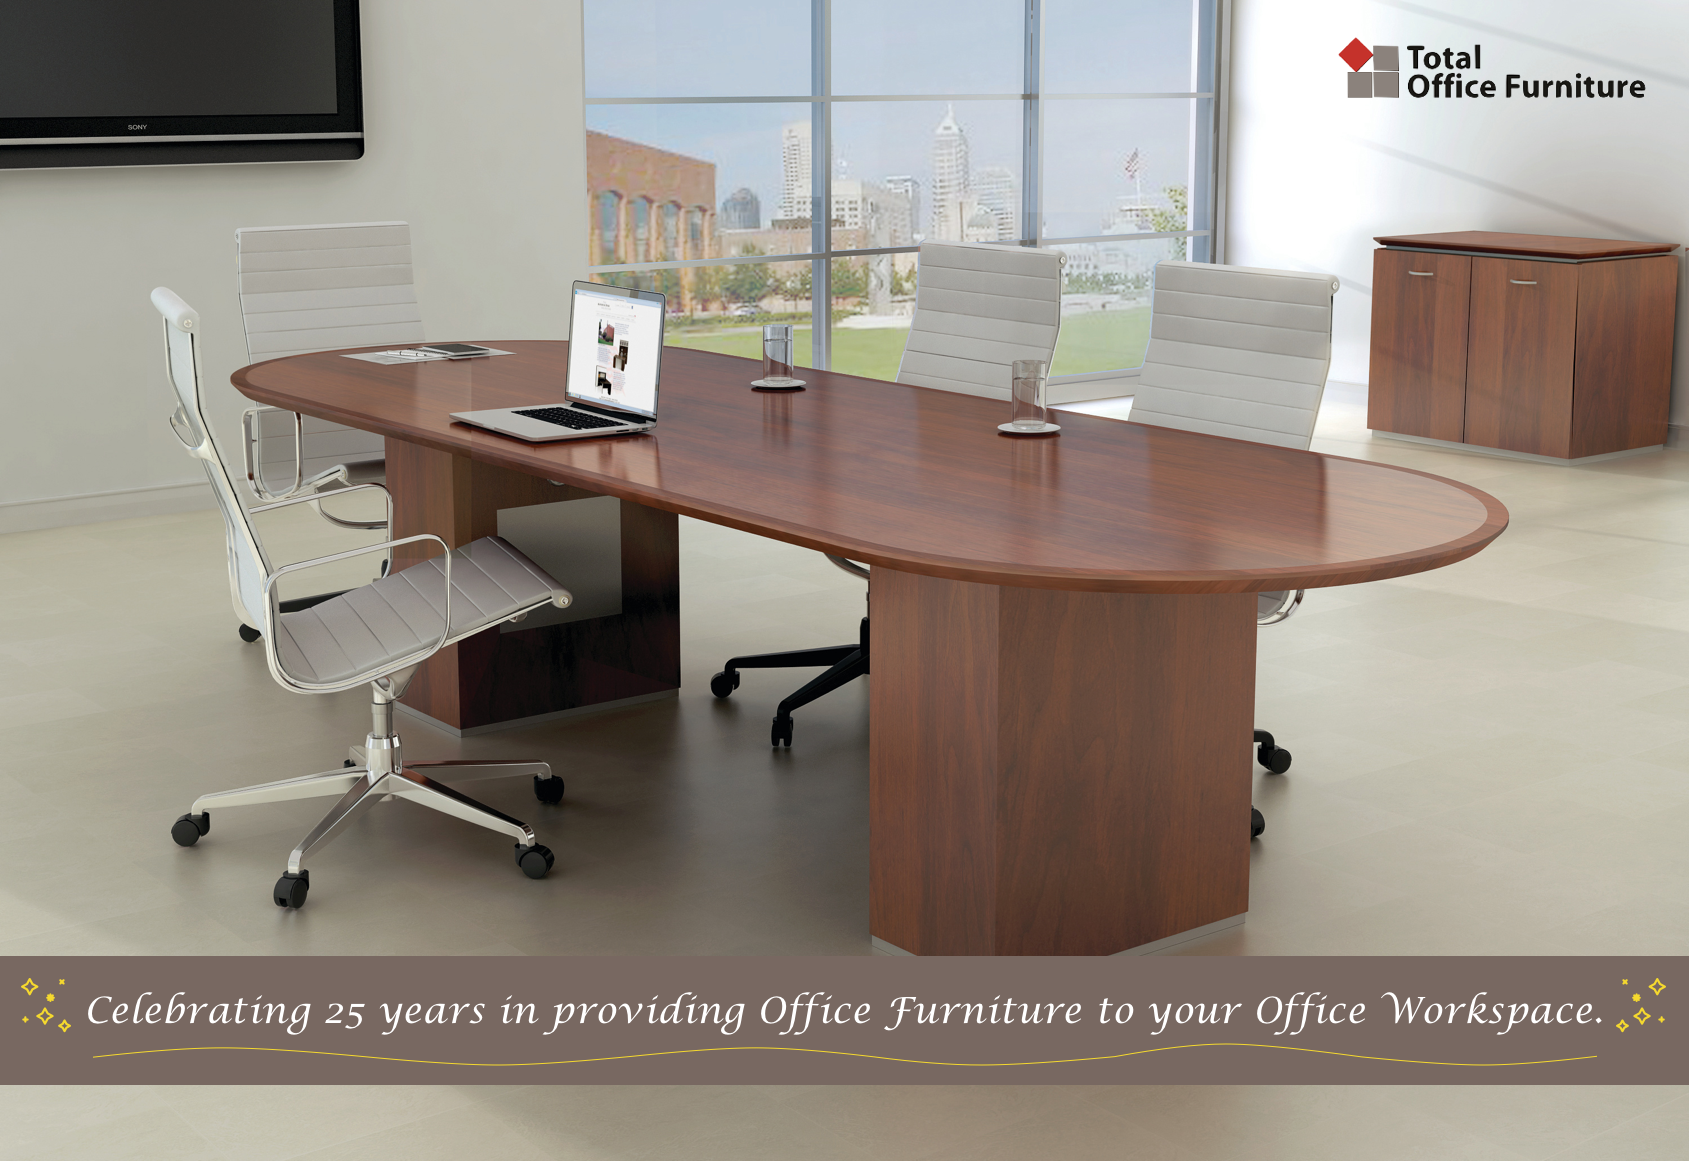 Total Office Furniture Celebrates Over 25 Years in providing you with the quality service and quality. Office Furniture Los Angeles & Office Furniture Orange County